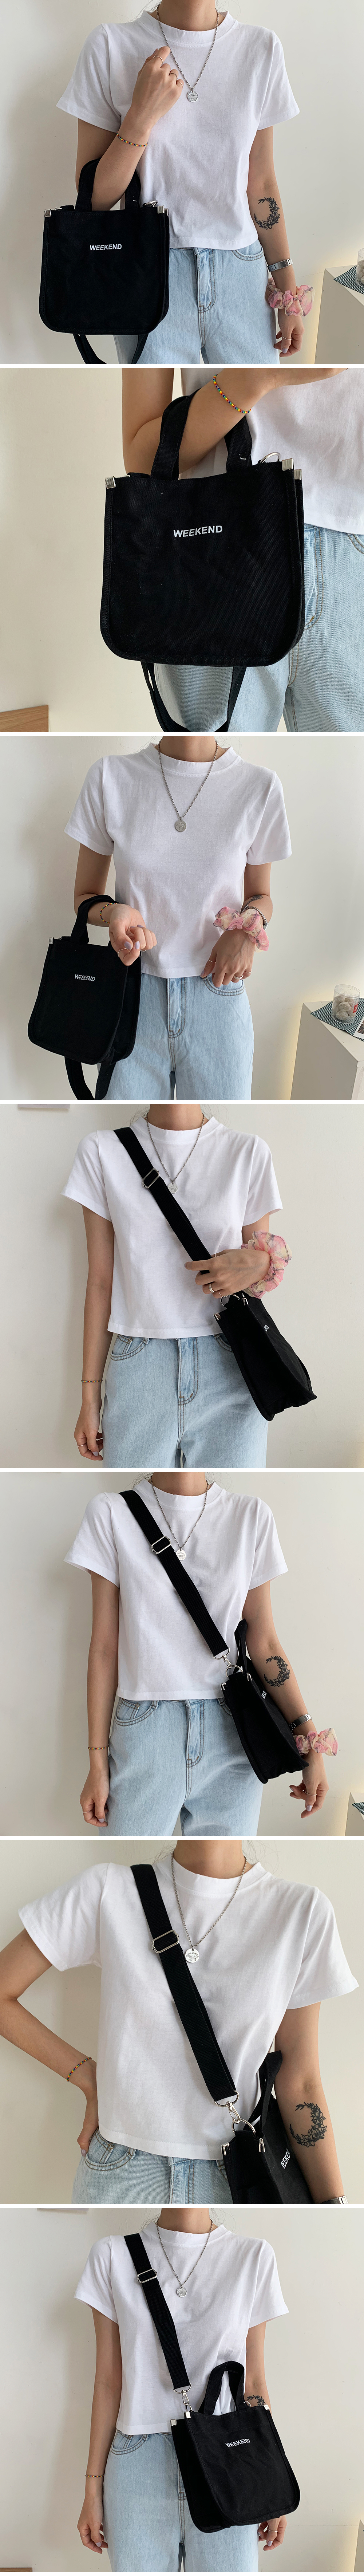 We cand canvas cross bag